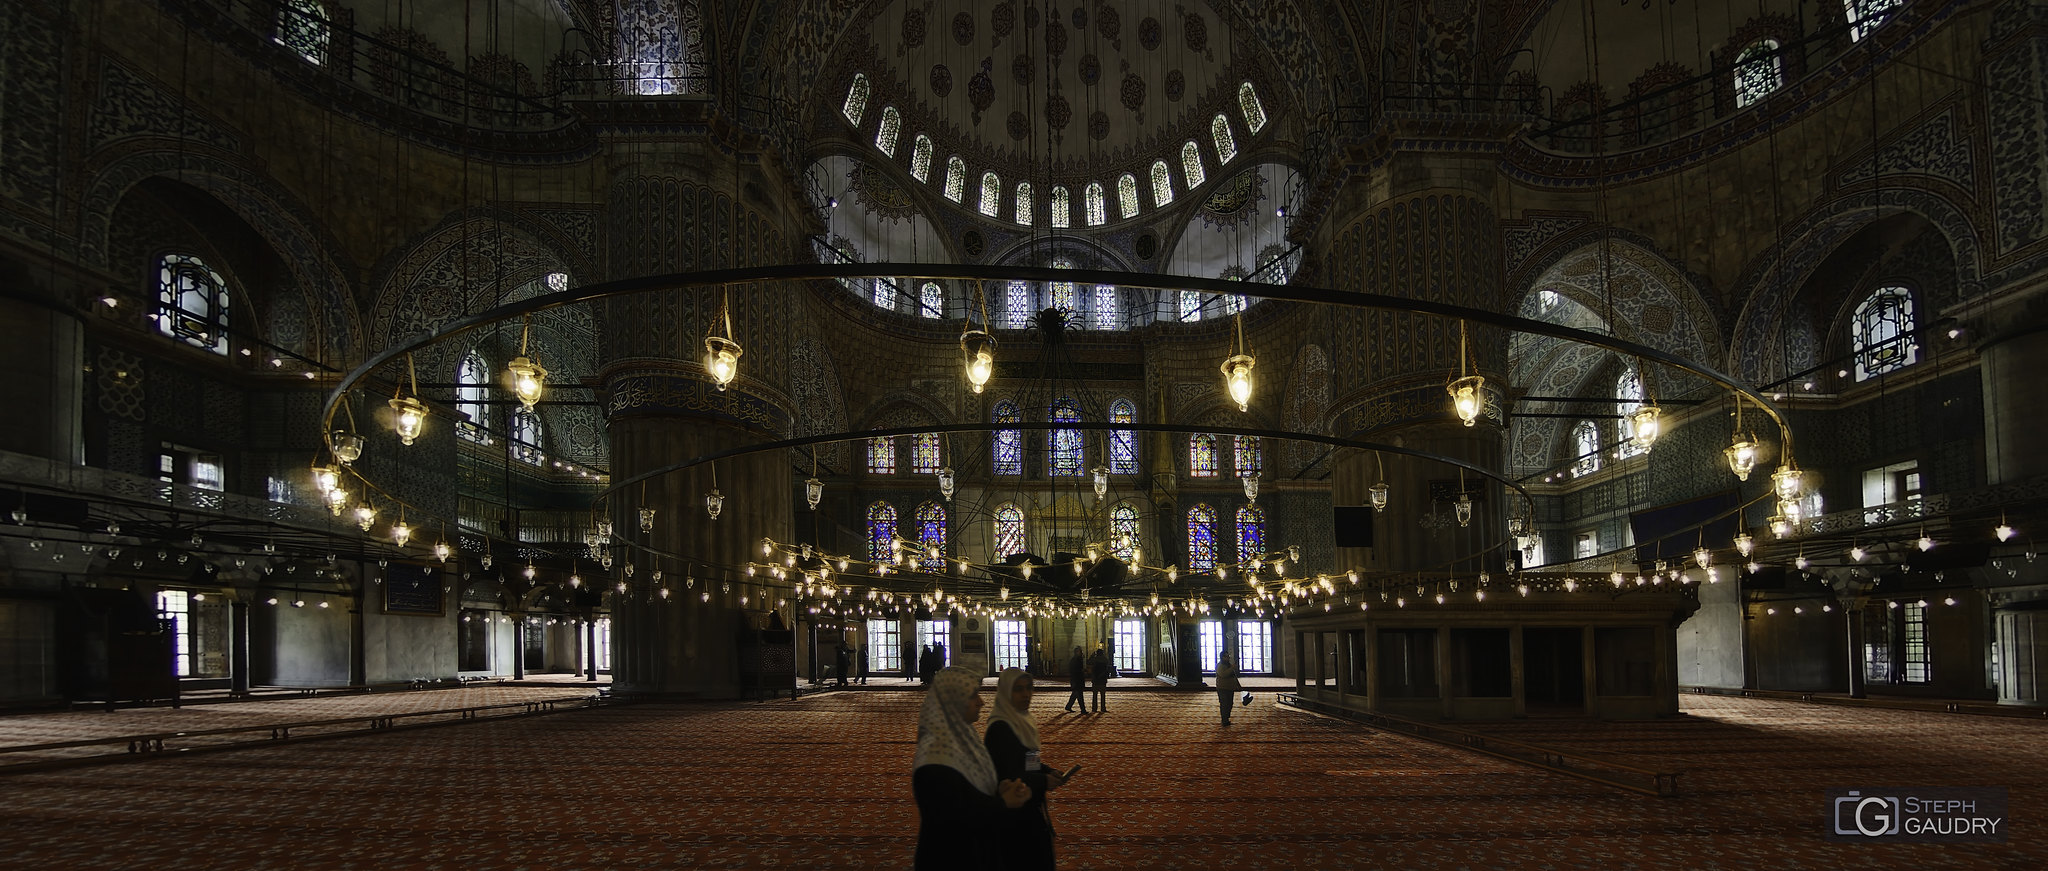 Sultan Ahmet Camii [Click to start slideshow]